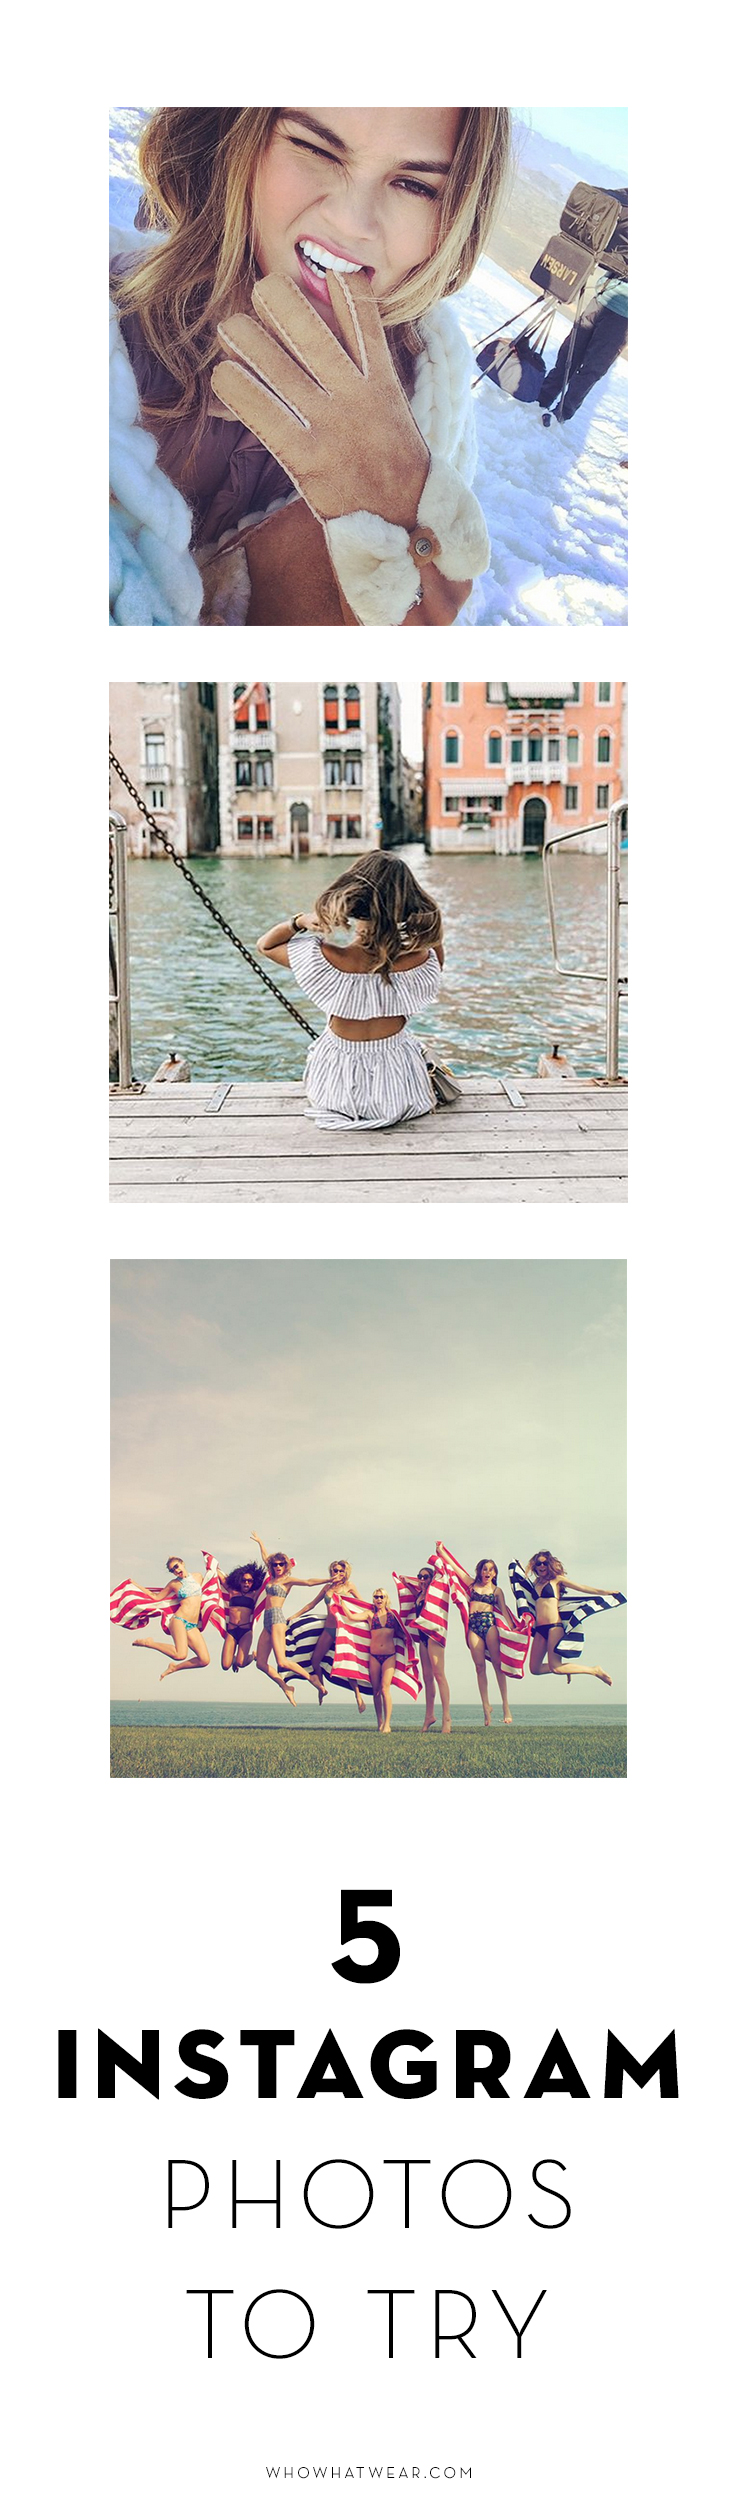 5 Fresh Instagram Photo Trends You Should Try